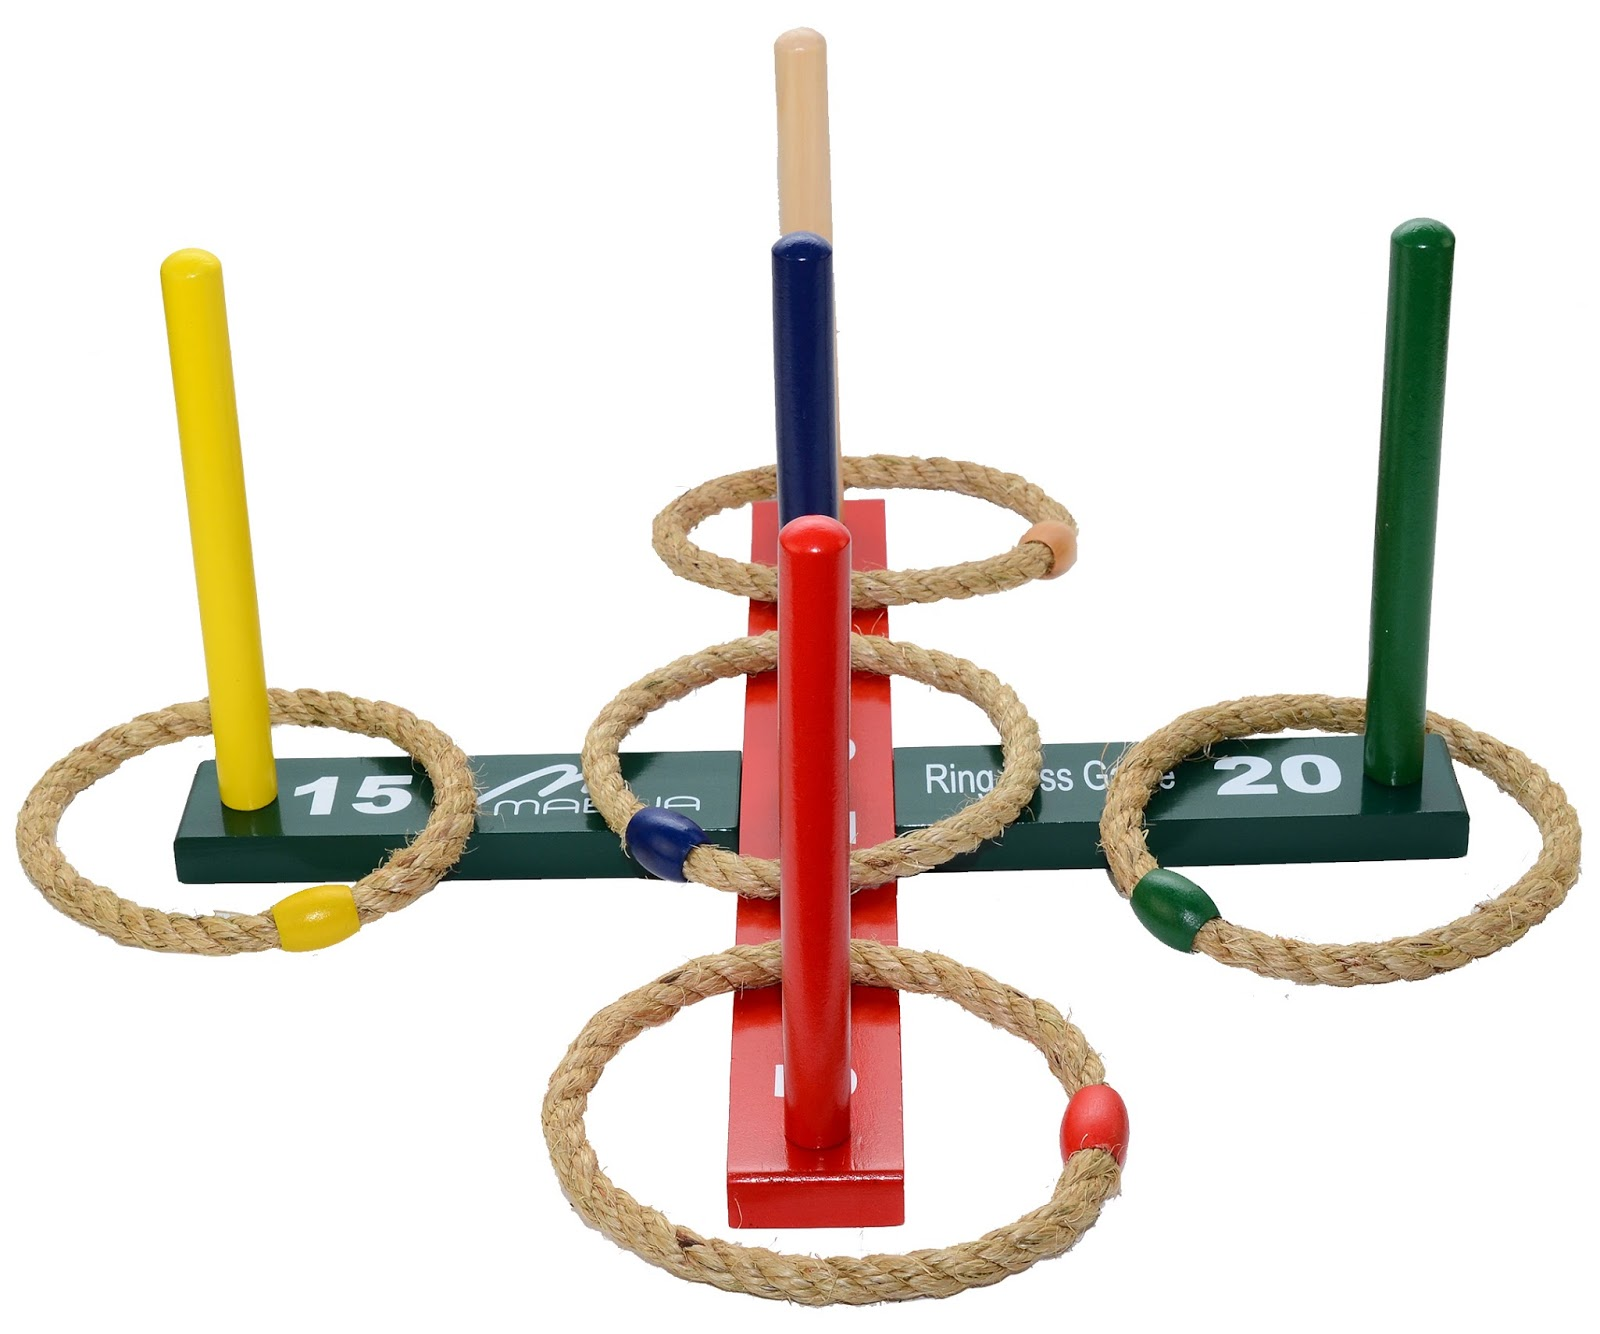 Wood games for adults